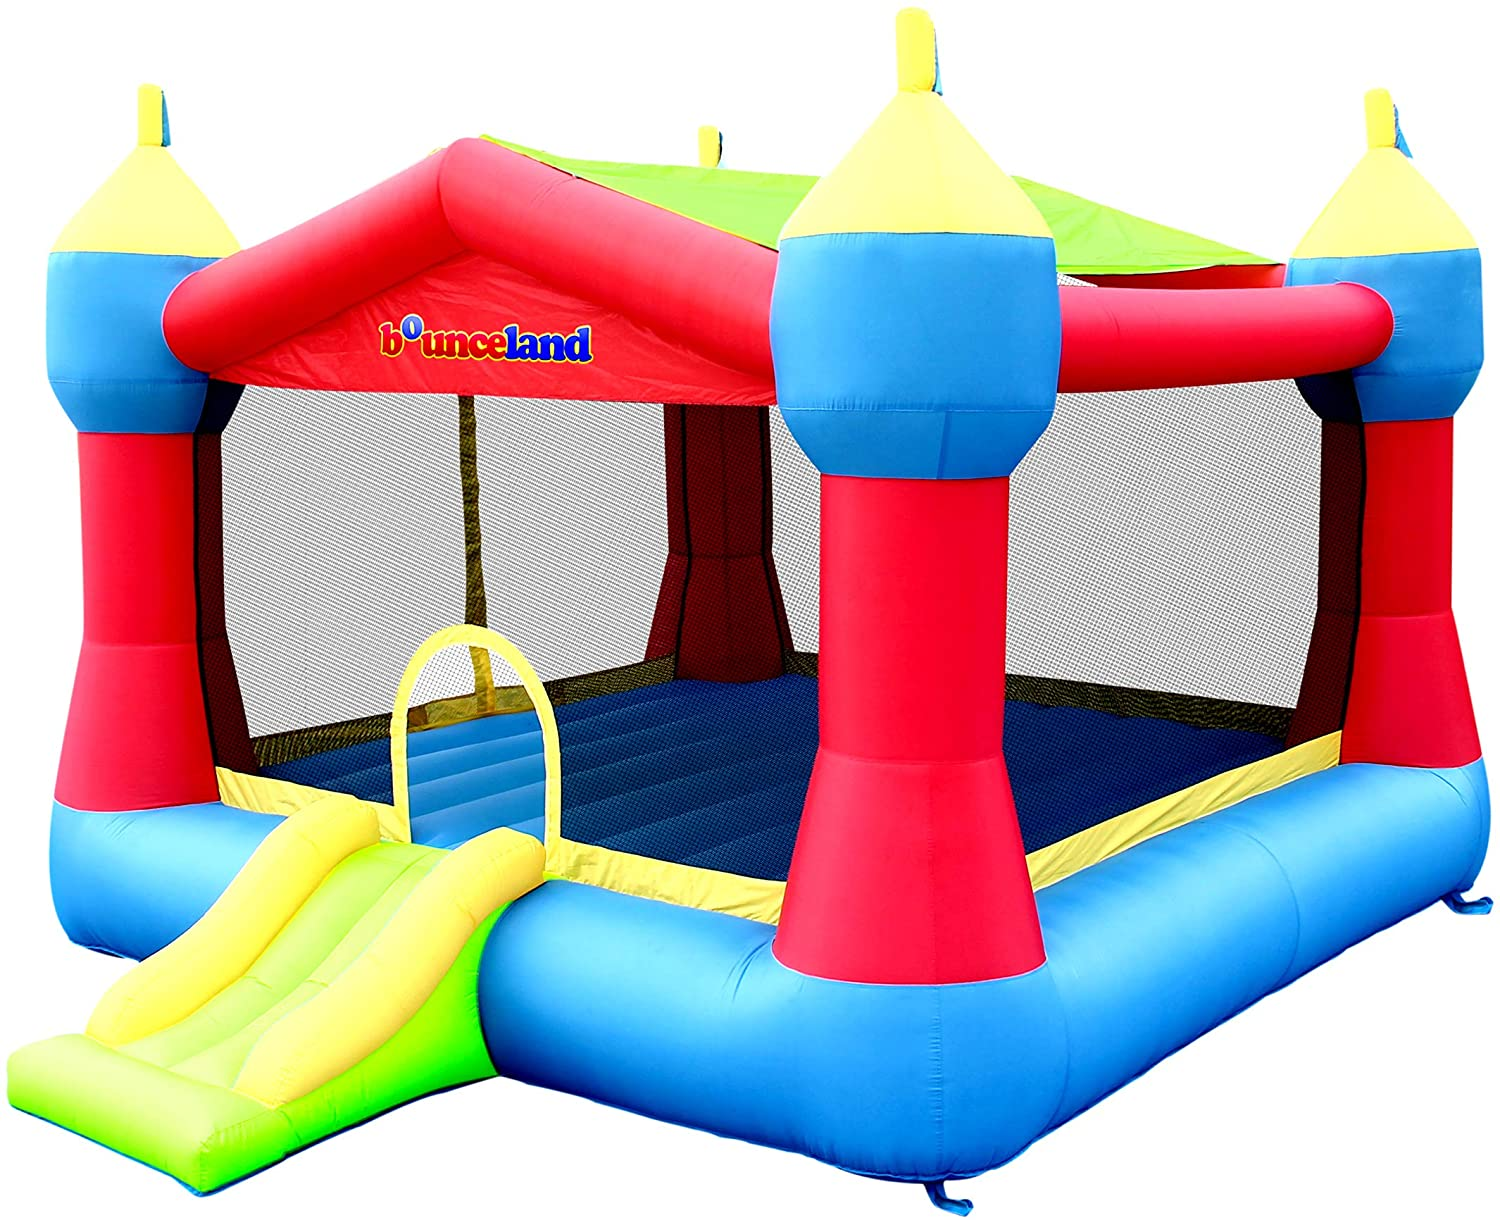 Bounceland Inflatable Ranking TOP19 Party Castle 2021new shipping free Bounce ft L Bouncer 16 House